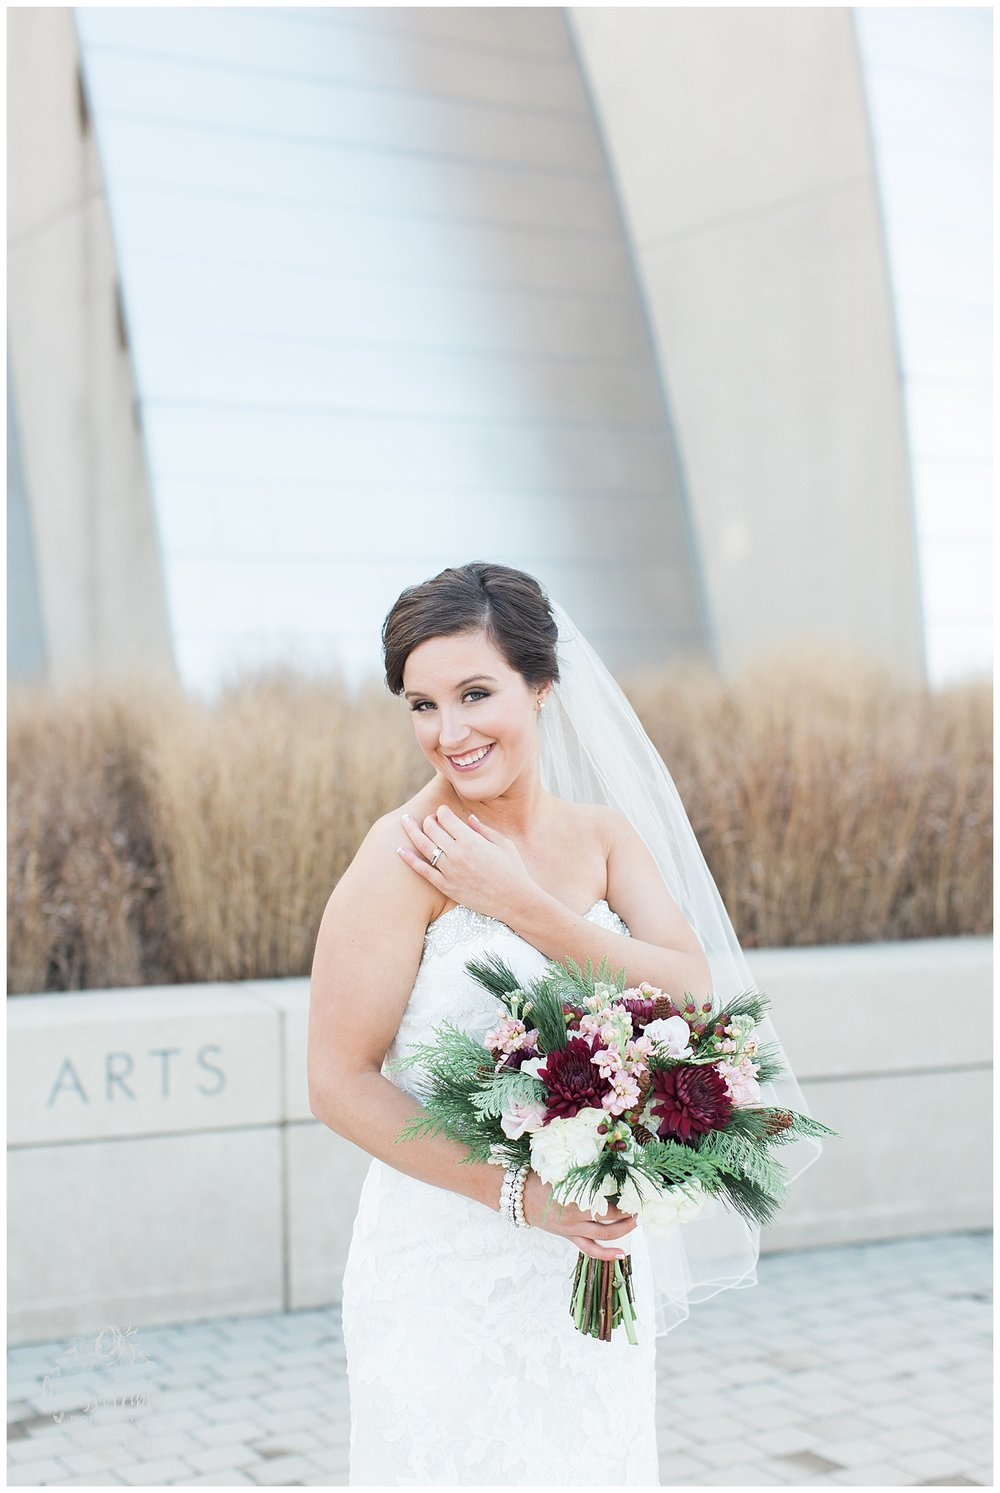 Kelsey & Cory | The Venue at Willow Creek Wedding | Kauffman Performing Arts | Marissa Cribbs Photography | KC Wedding Photographer_0341.jpg